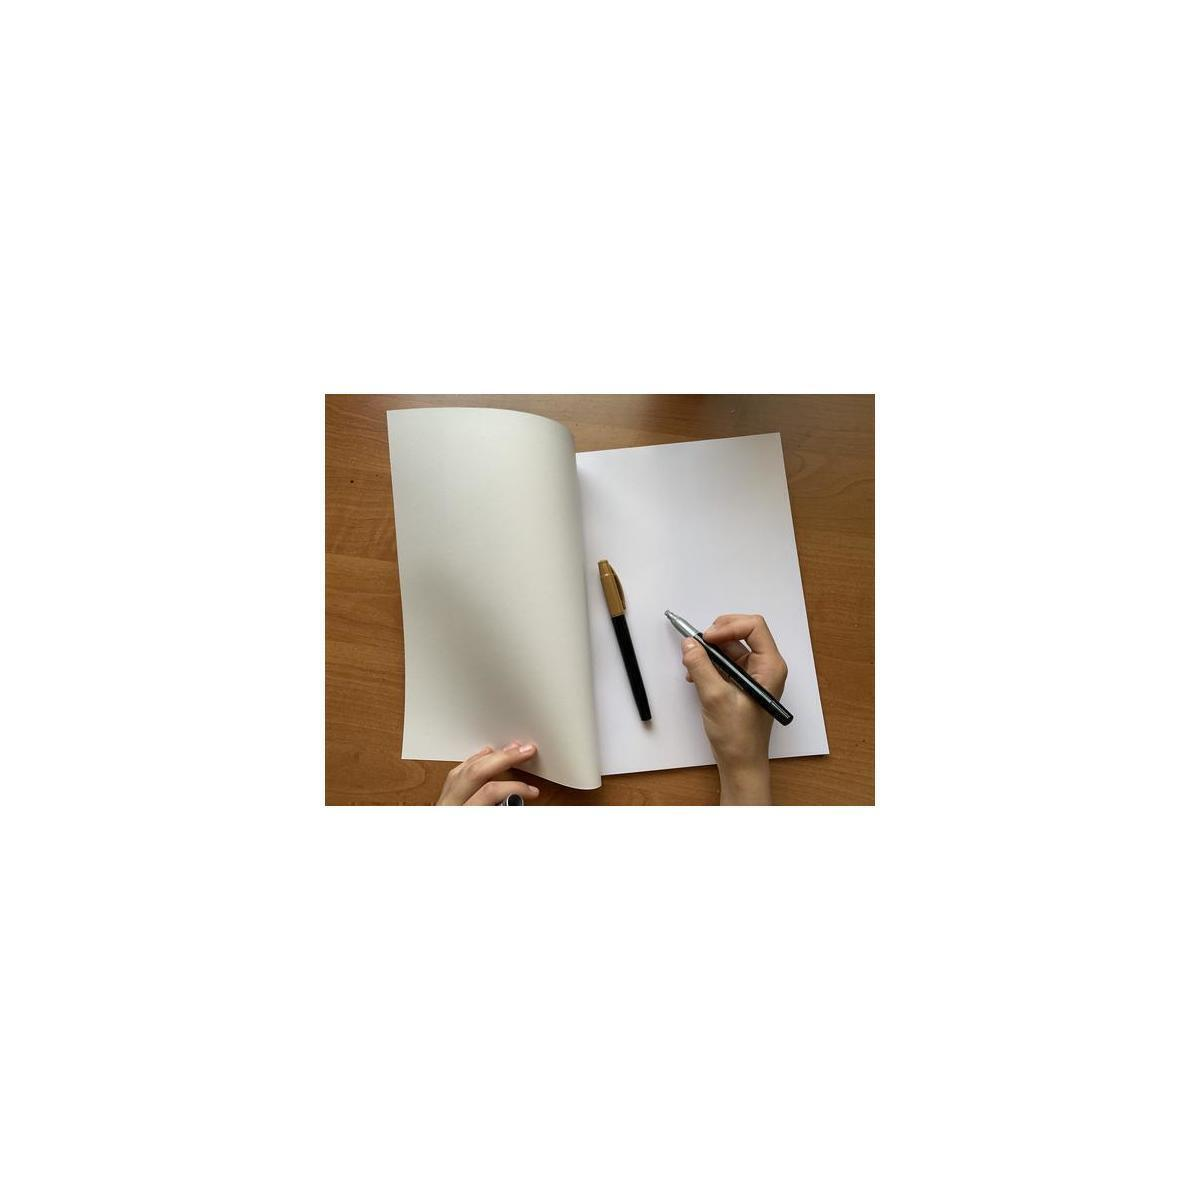 60 Pages Large Blank Books | Paperback Sketch Books for Drawing - Create Your own Art Notebook, Diary, Journal, Comic Book | Acid Free Premium 24lb Unlined Blank White Paper 98 Bright (3 Pack)